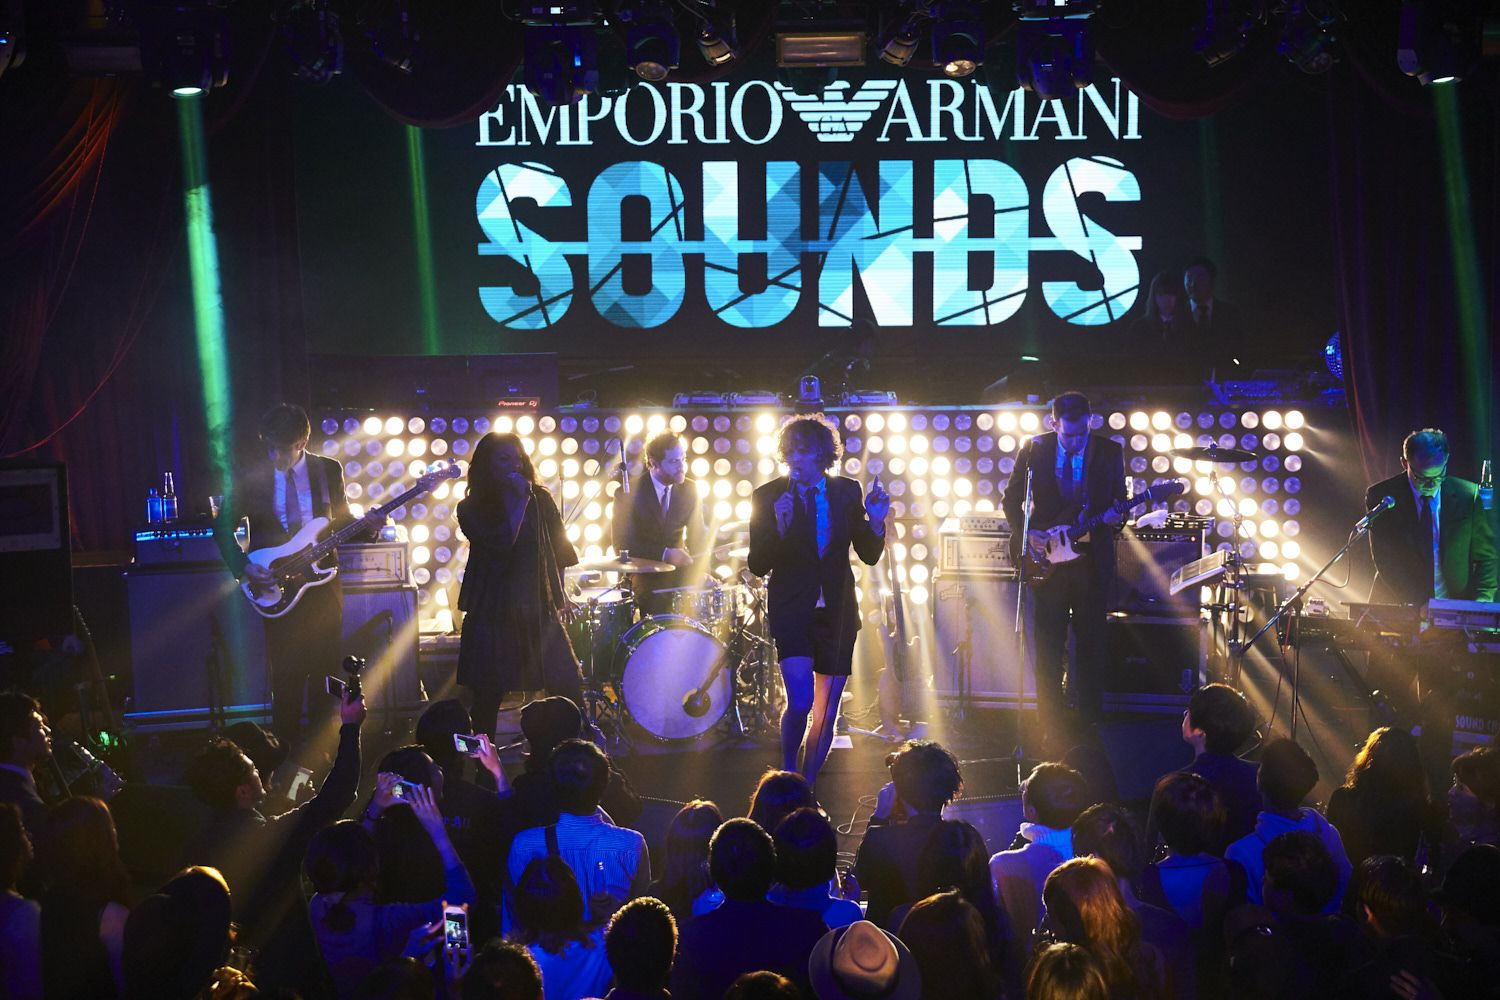 !!! (Chk Chk Chk) performing LIVE at the #EmporioArmaniSounds event in Osaka.  Download the App for exclusive content: http://emporioarmanisounds.com/download